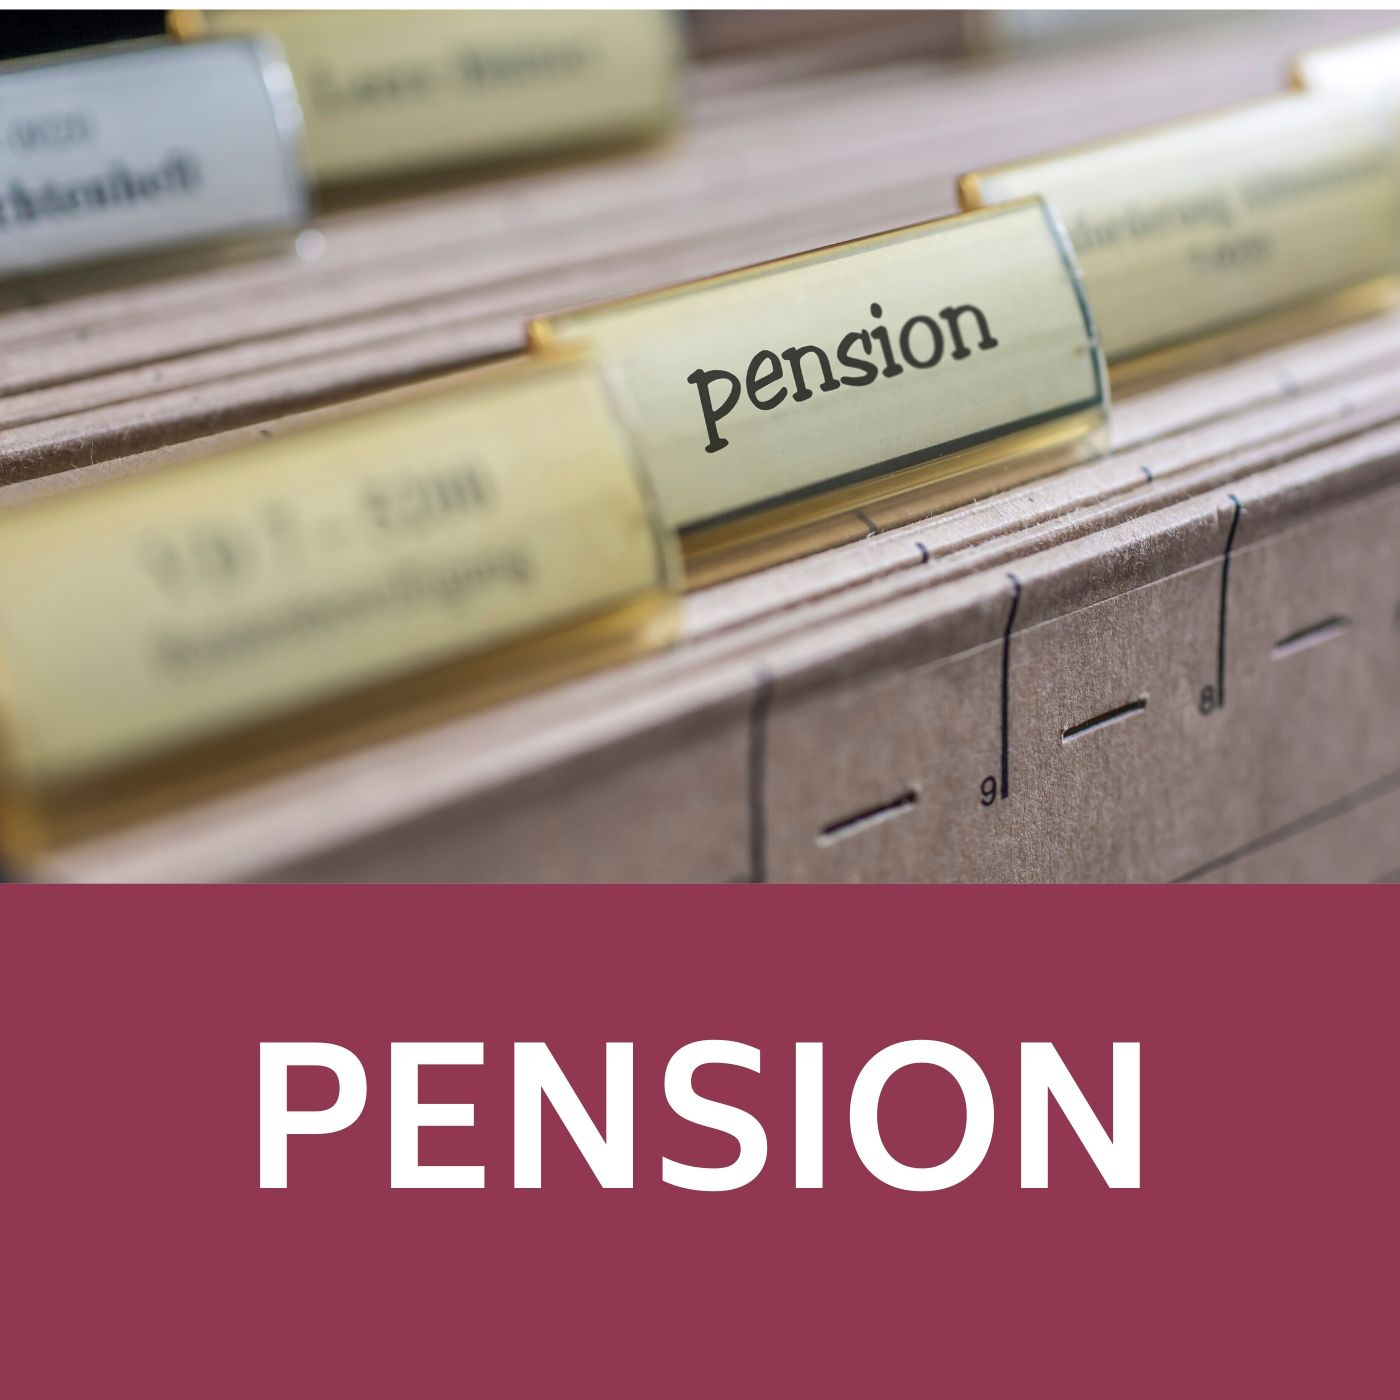 Image of filing cabinet with a folder tabbed pension that redirects to the pension webpage